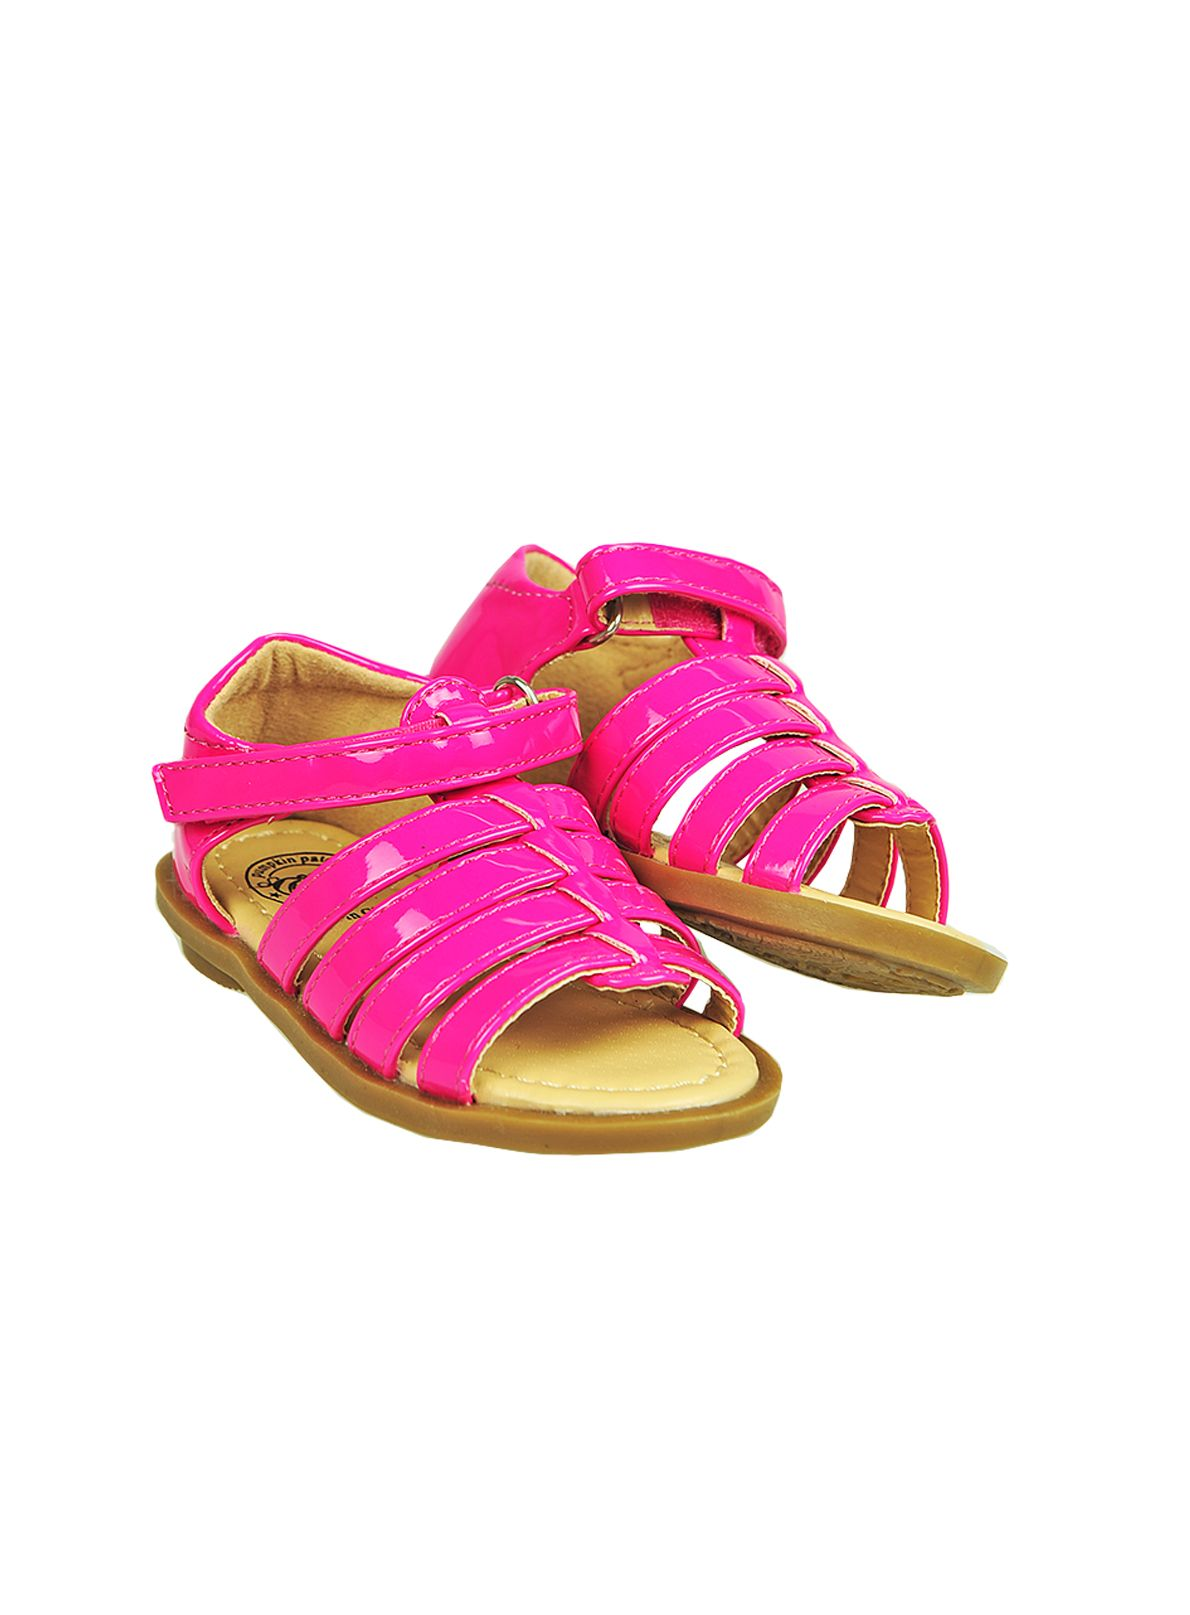 Girls patent first walker sandal